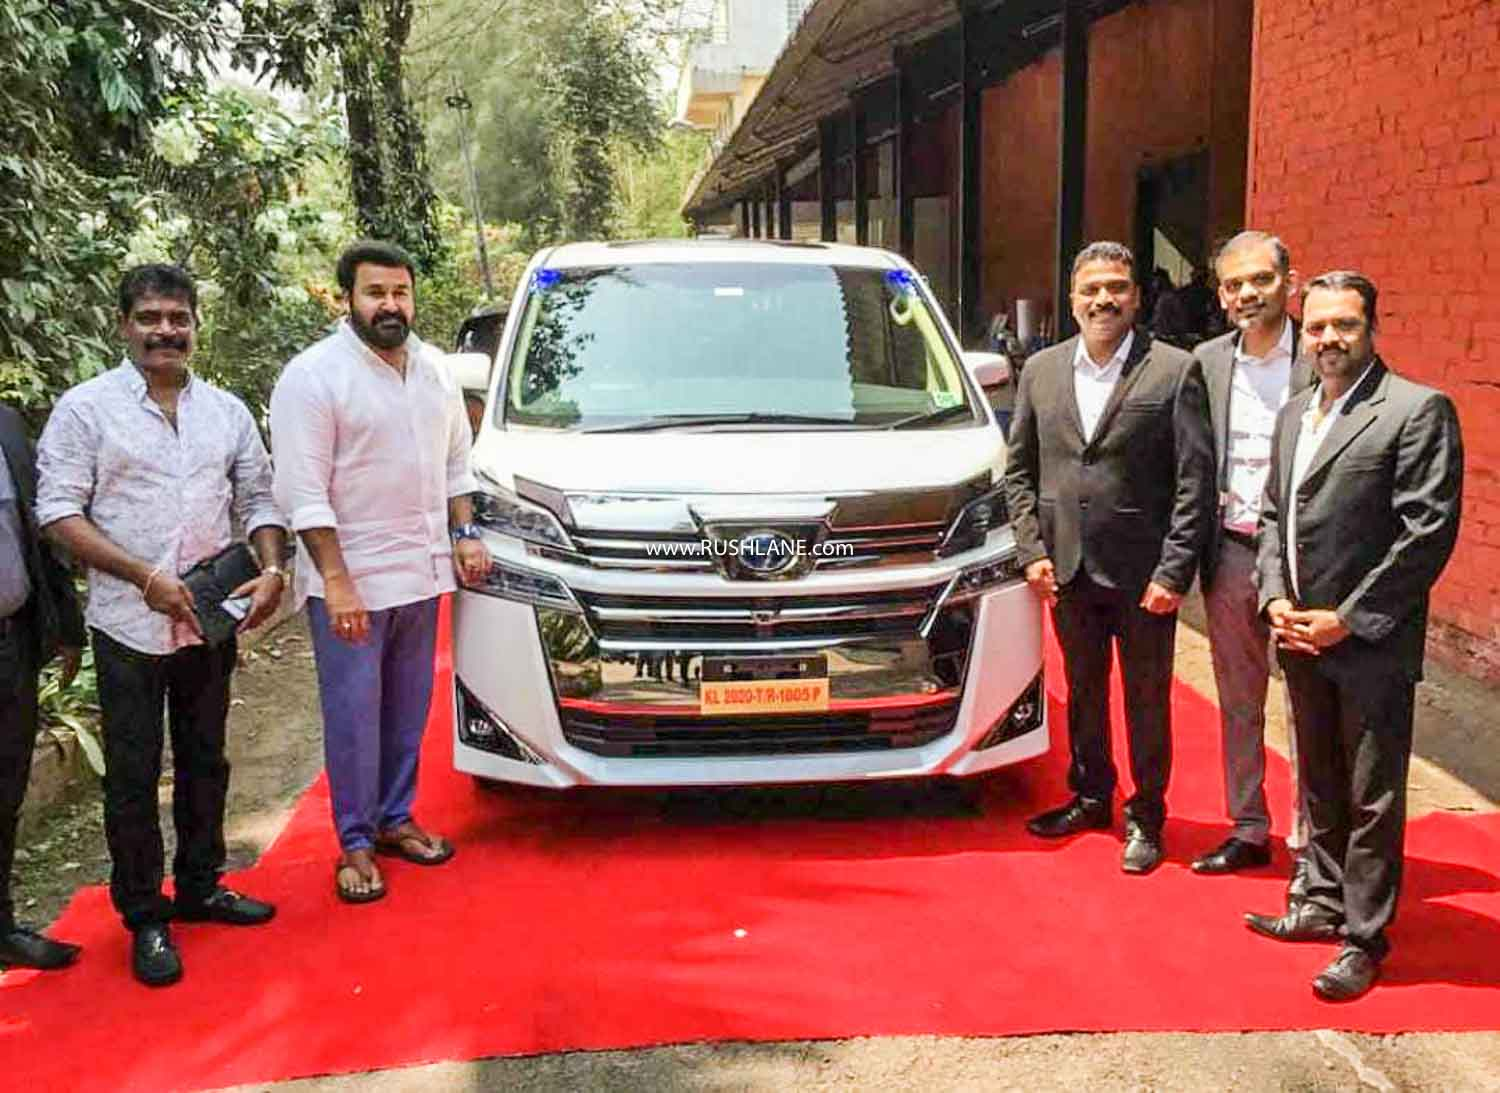 Toyota Vellfire delivered to Mohanlal